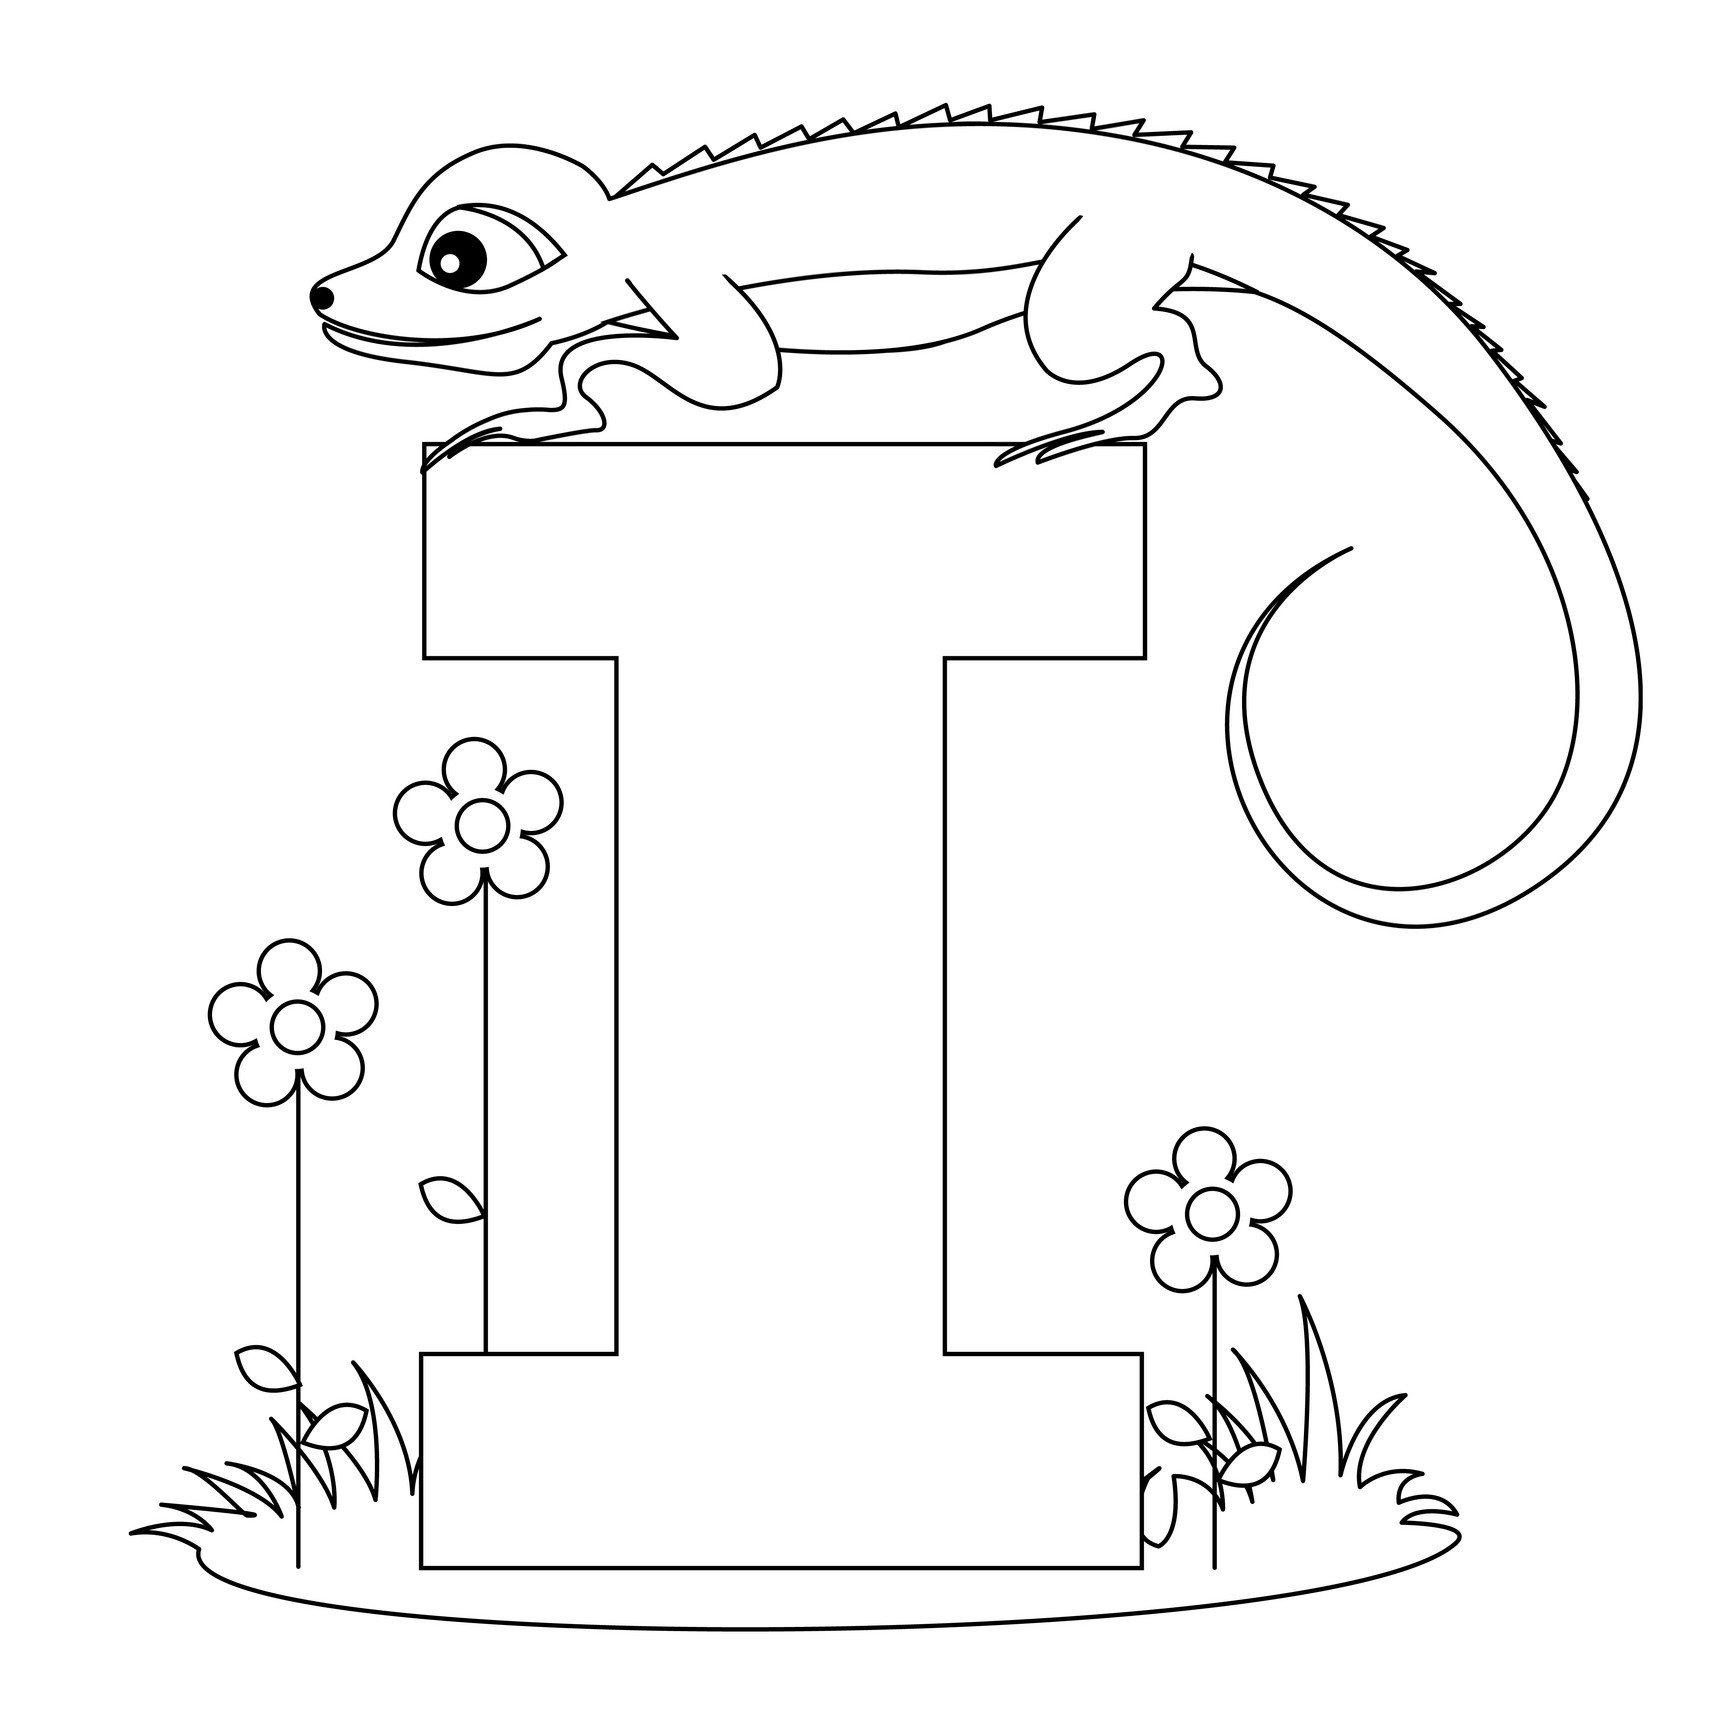 Alphabet i coloring pages - Alphabet Coloring Pages Letter I